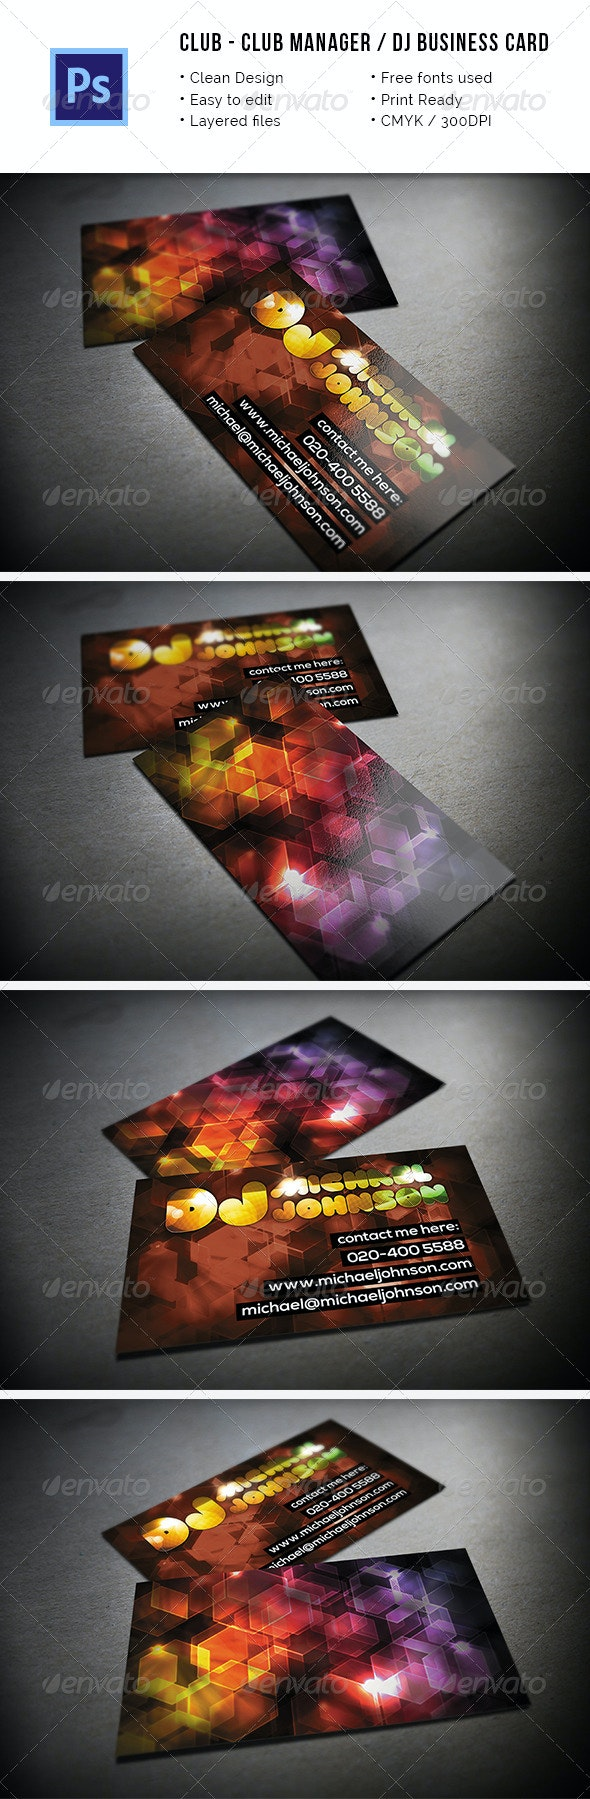 Club Manager / DJ Business Card - Business Cards Print Templates